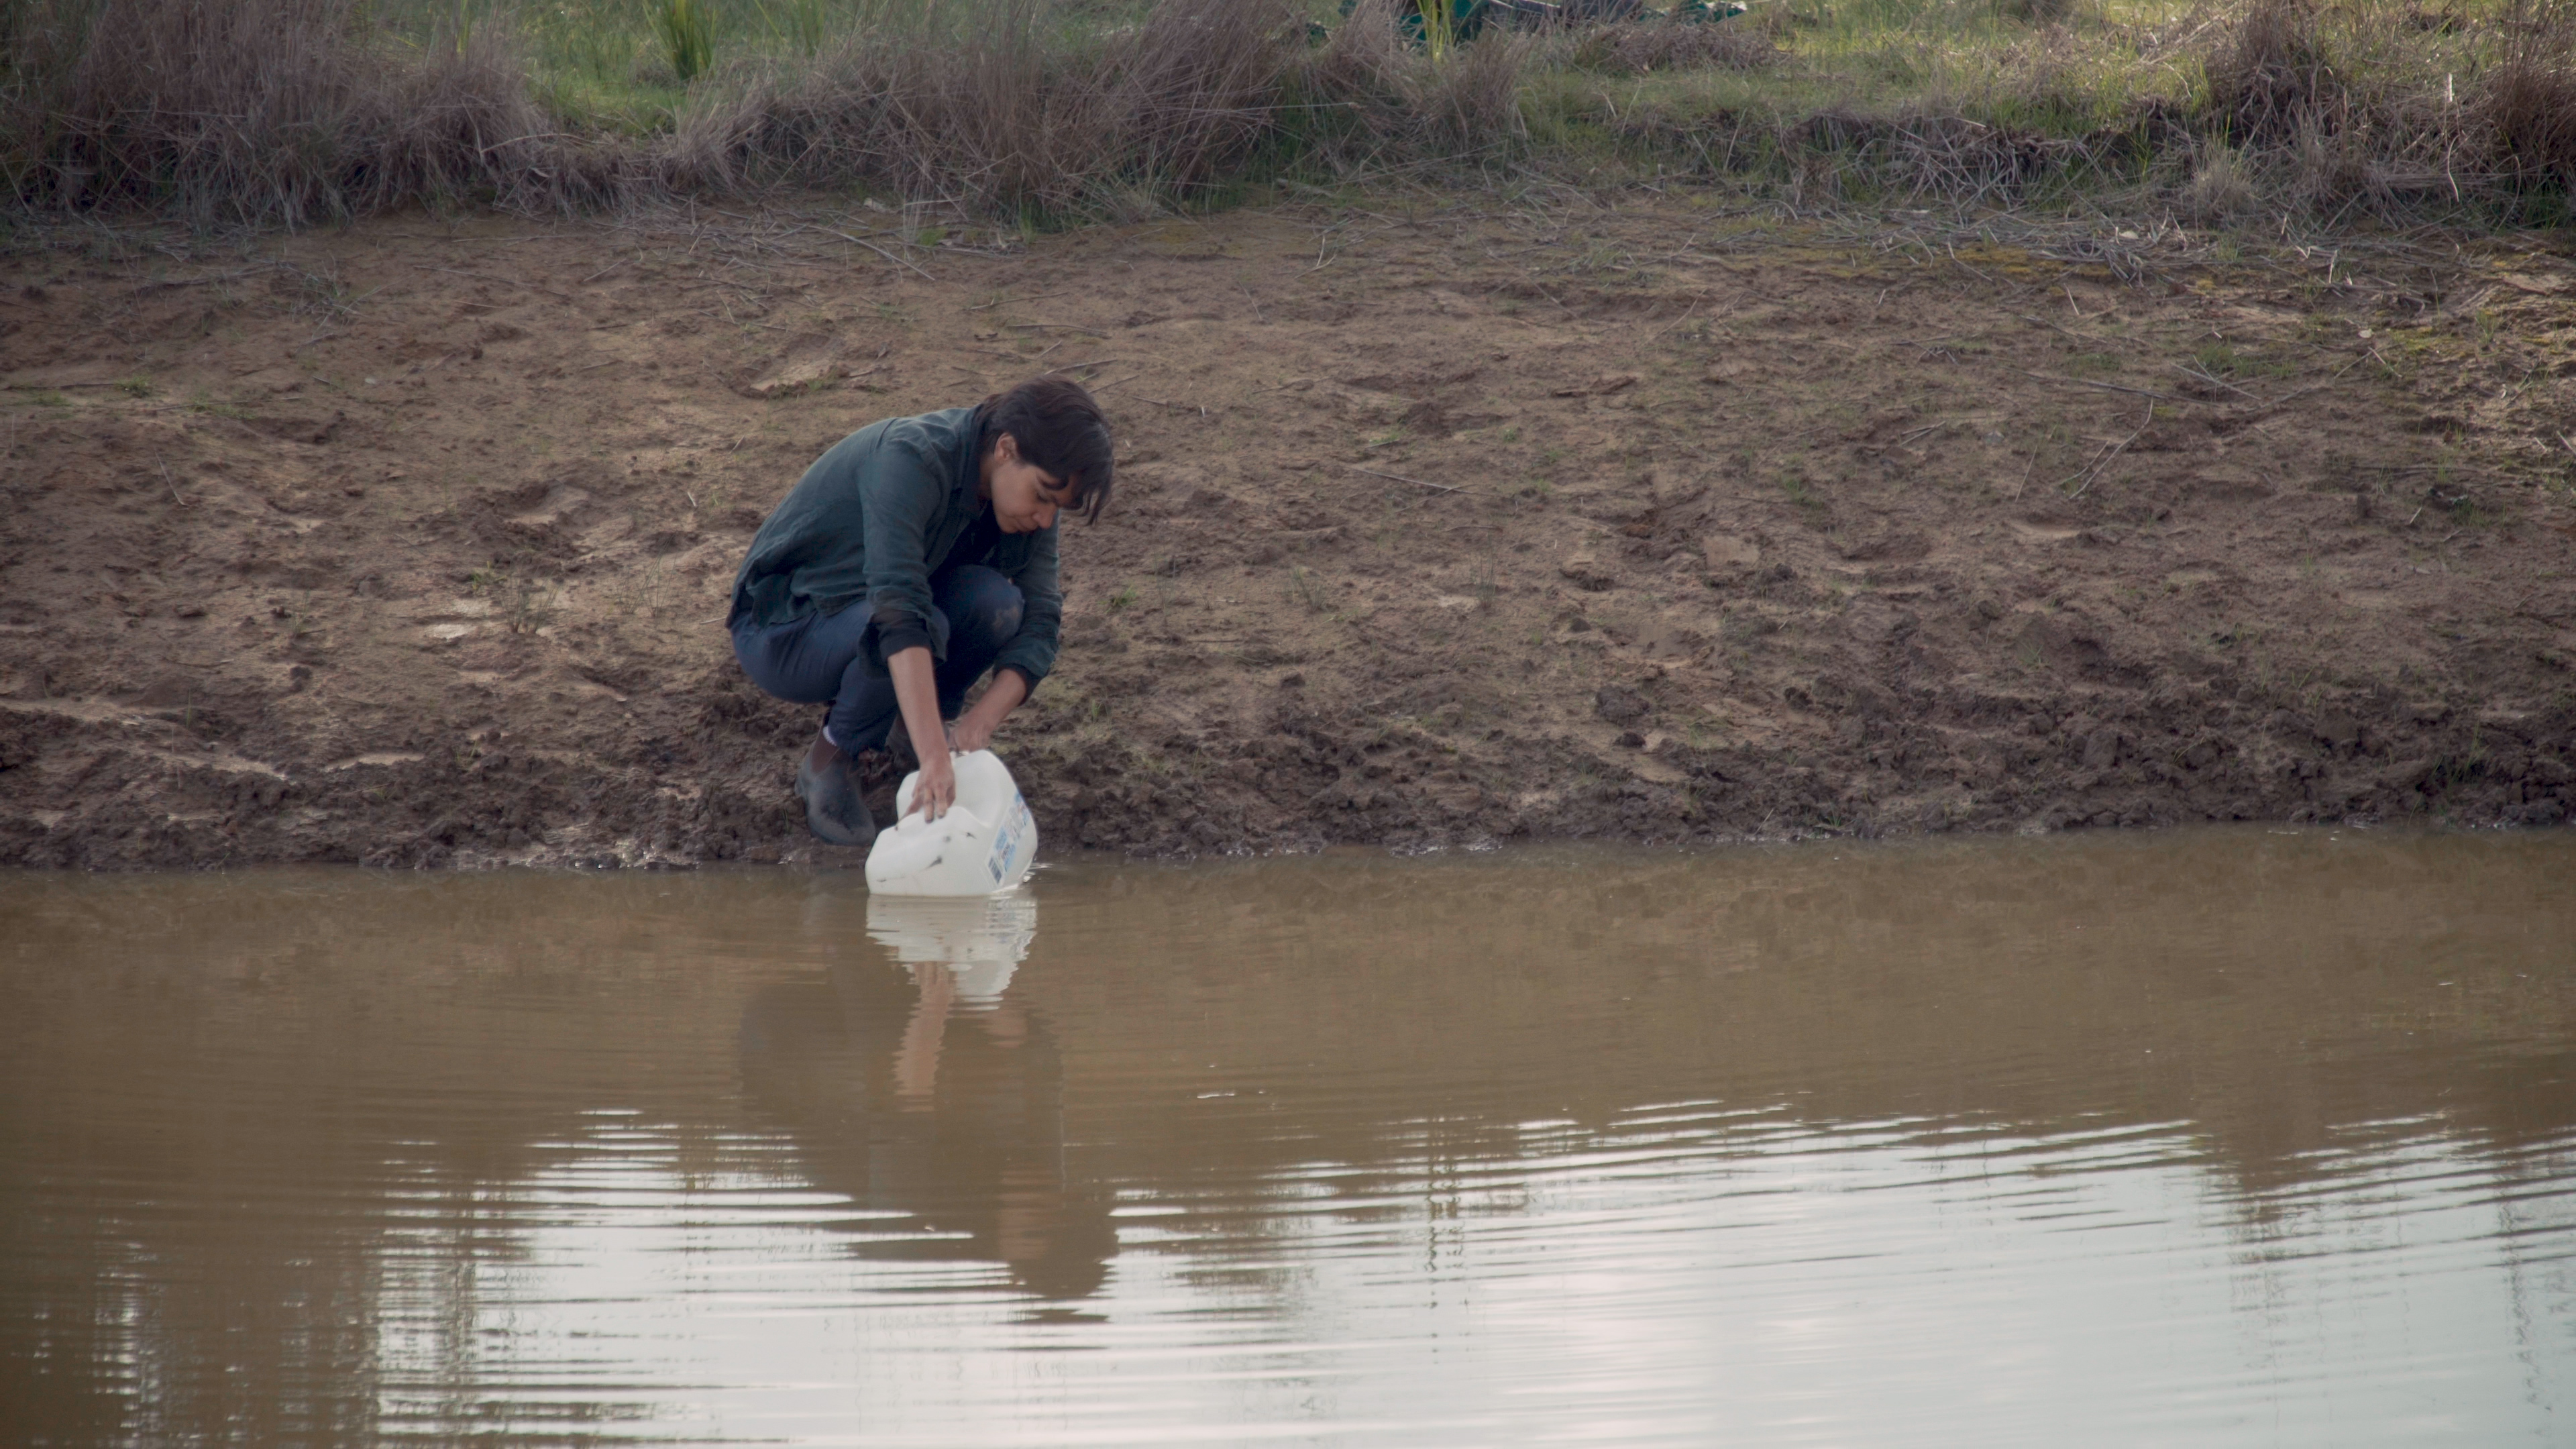 a person collecting water from a muddy dam